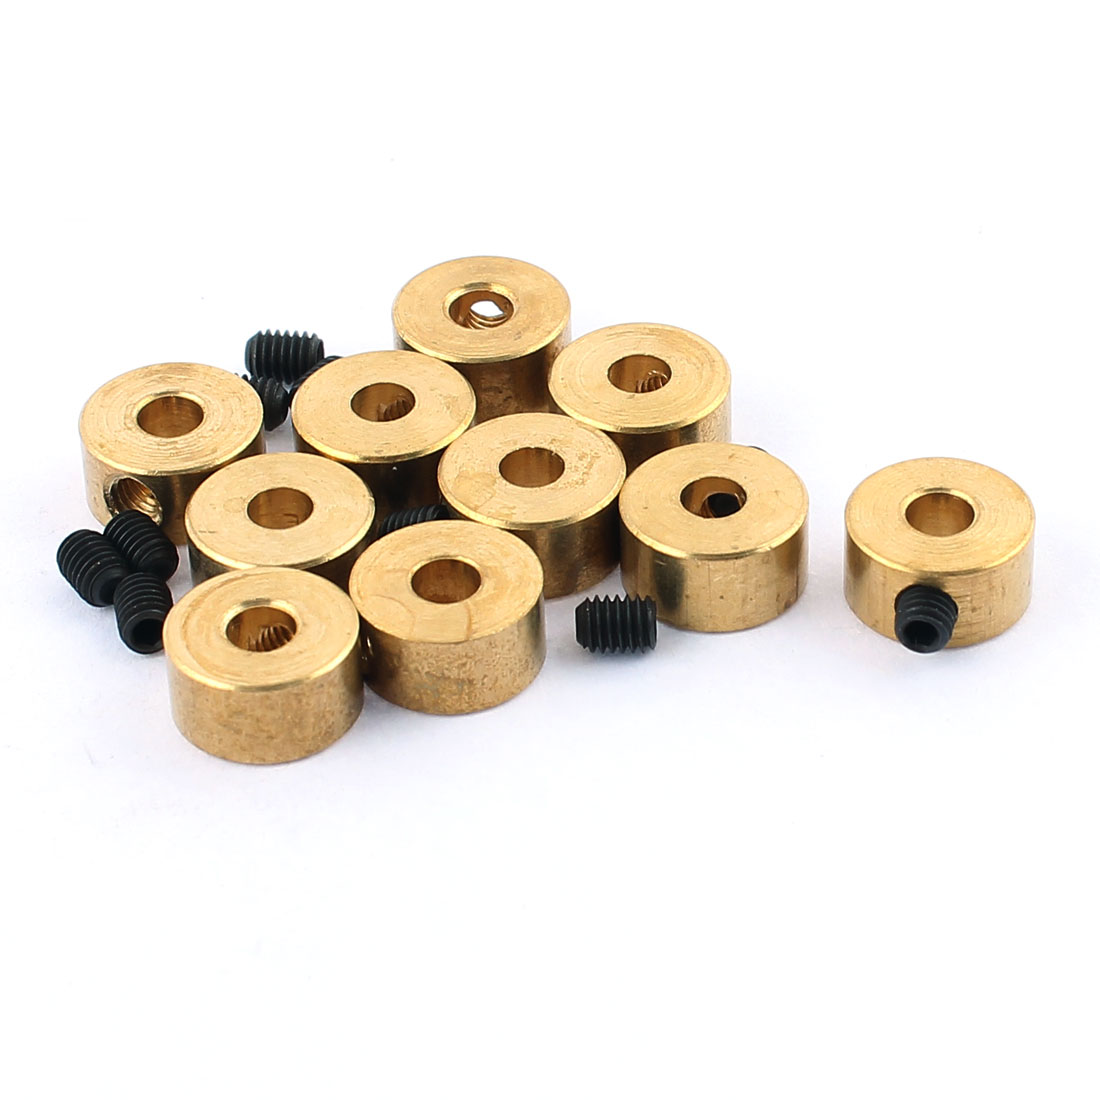 10 Pcs RC Airplane Landing Gear Wheel Stoppers 3.2mm Inner Dia 8x5mm w Screw